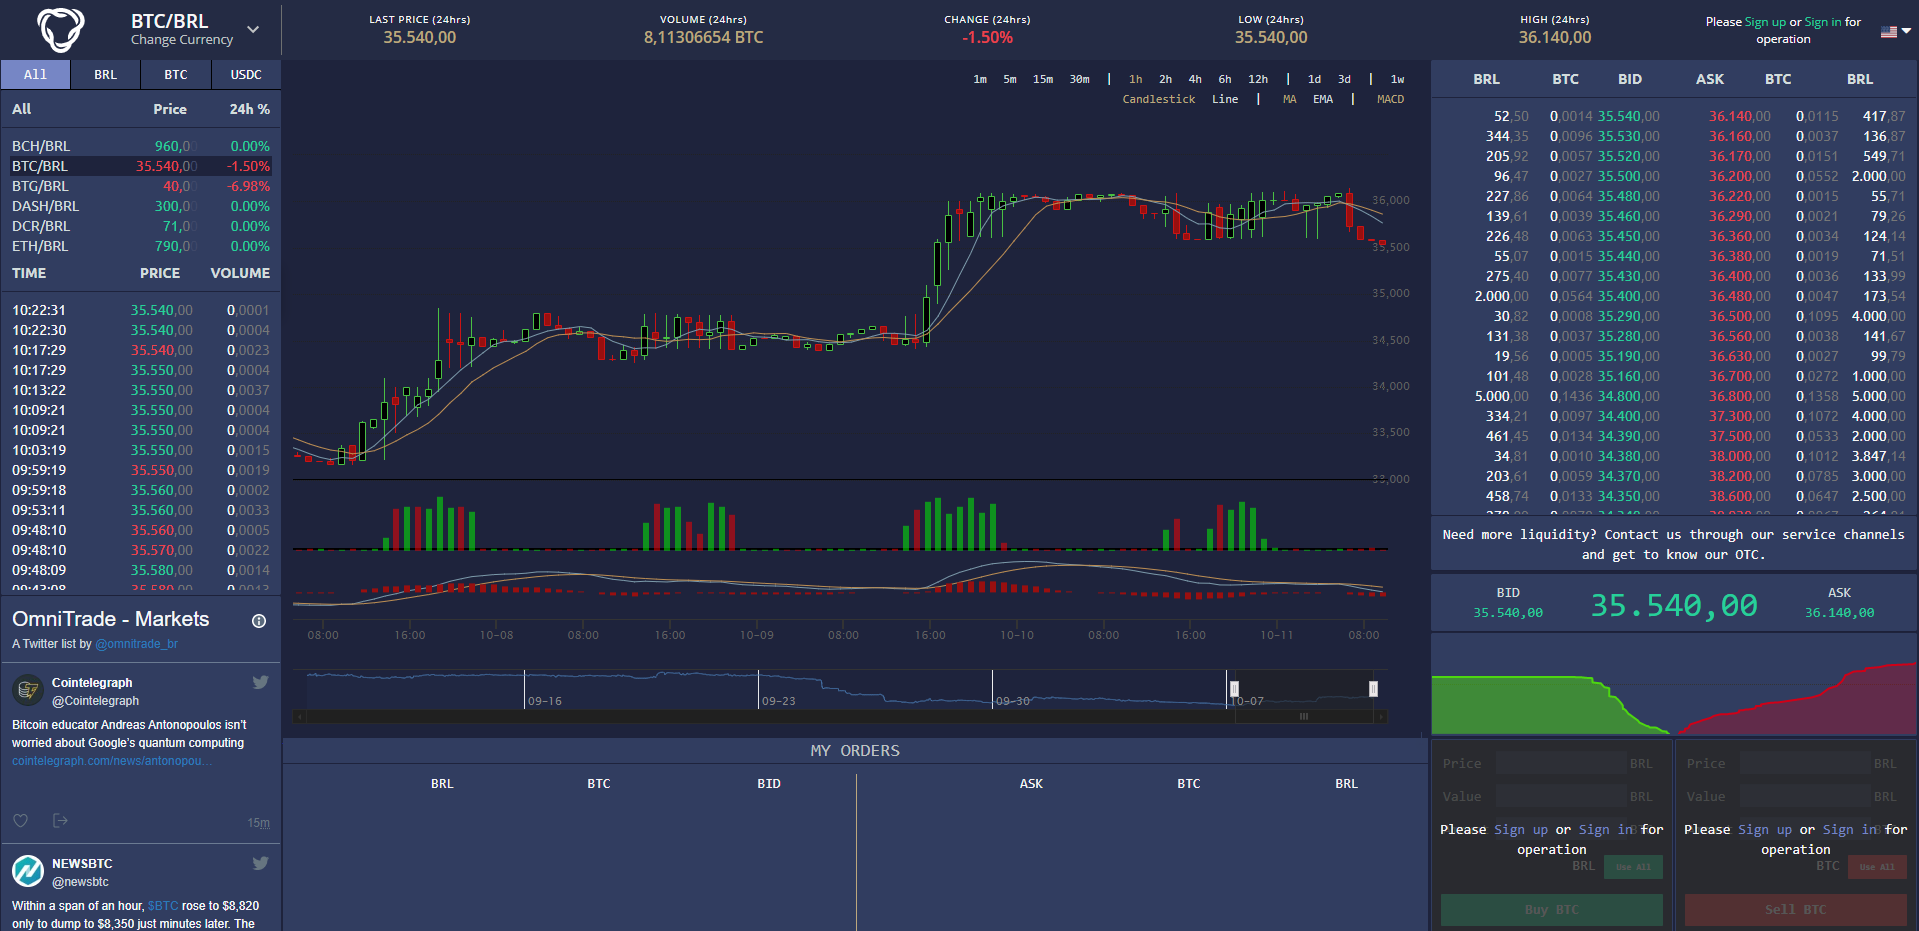 Omnitrade Trading View